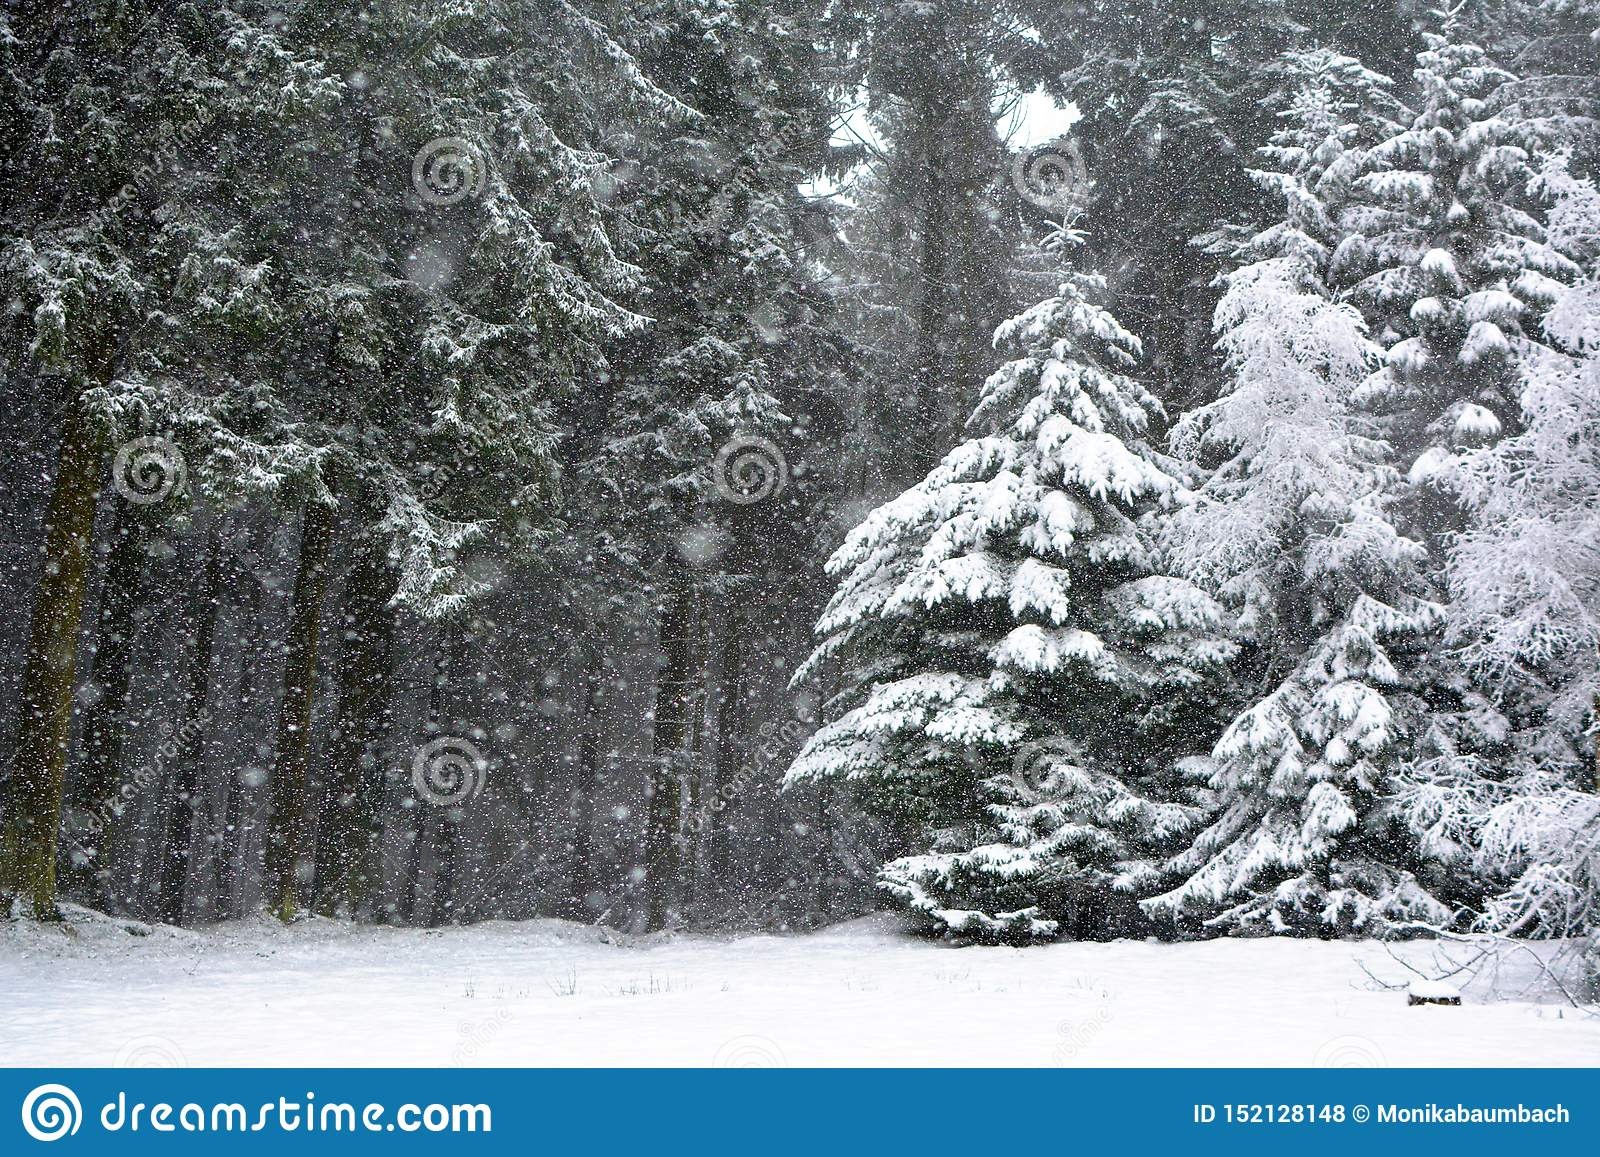 Forest with conifer trees during heavy snow storm in winter